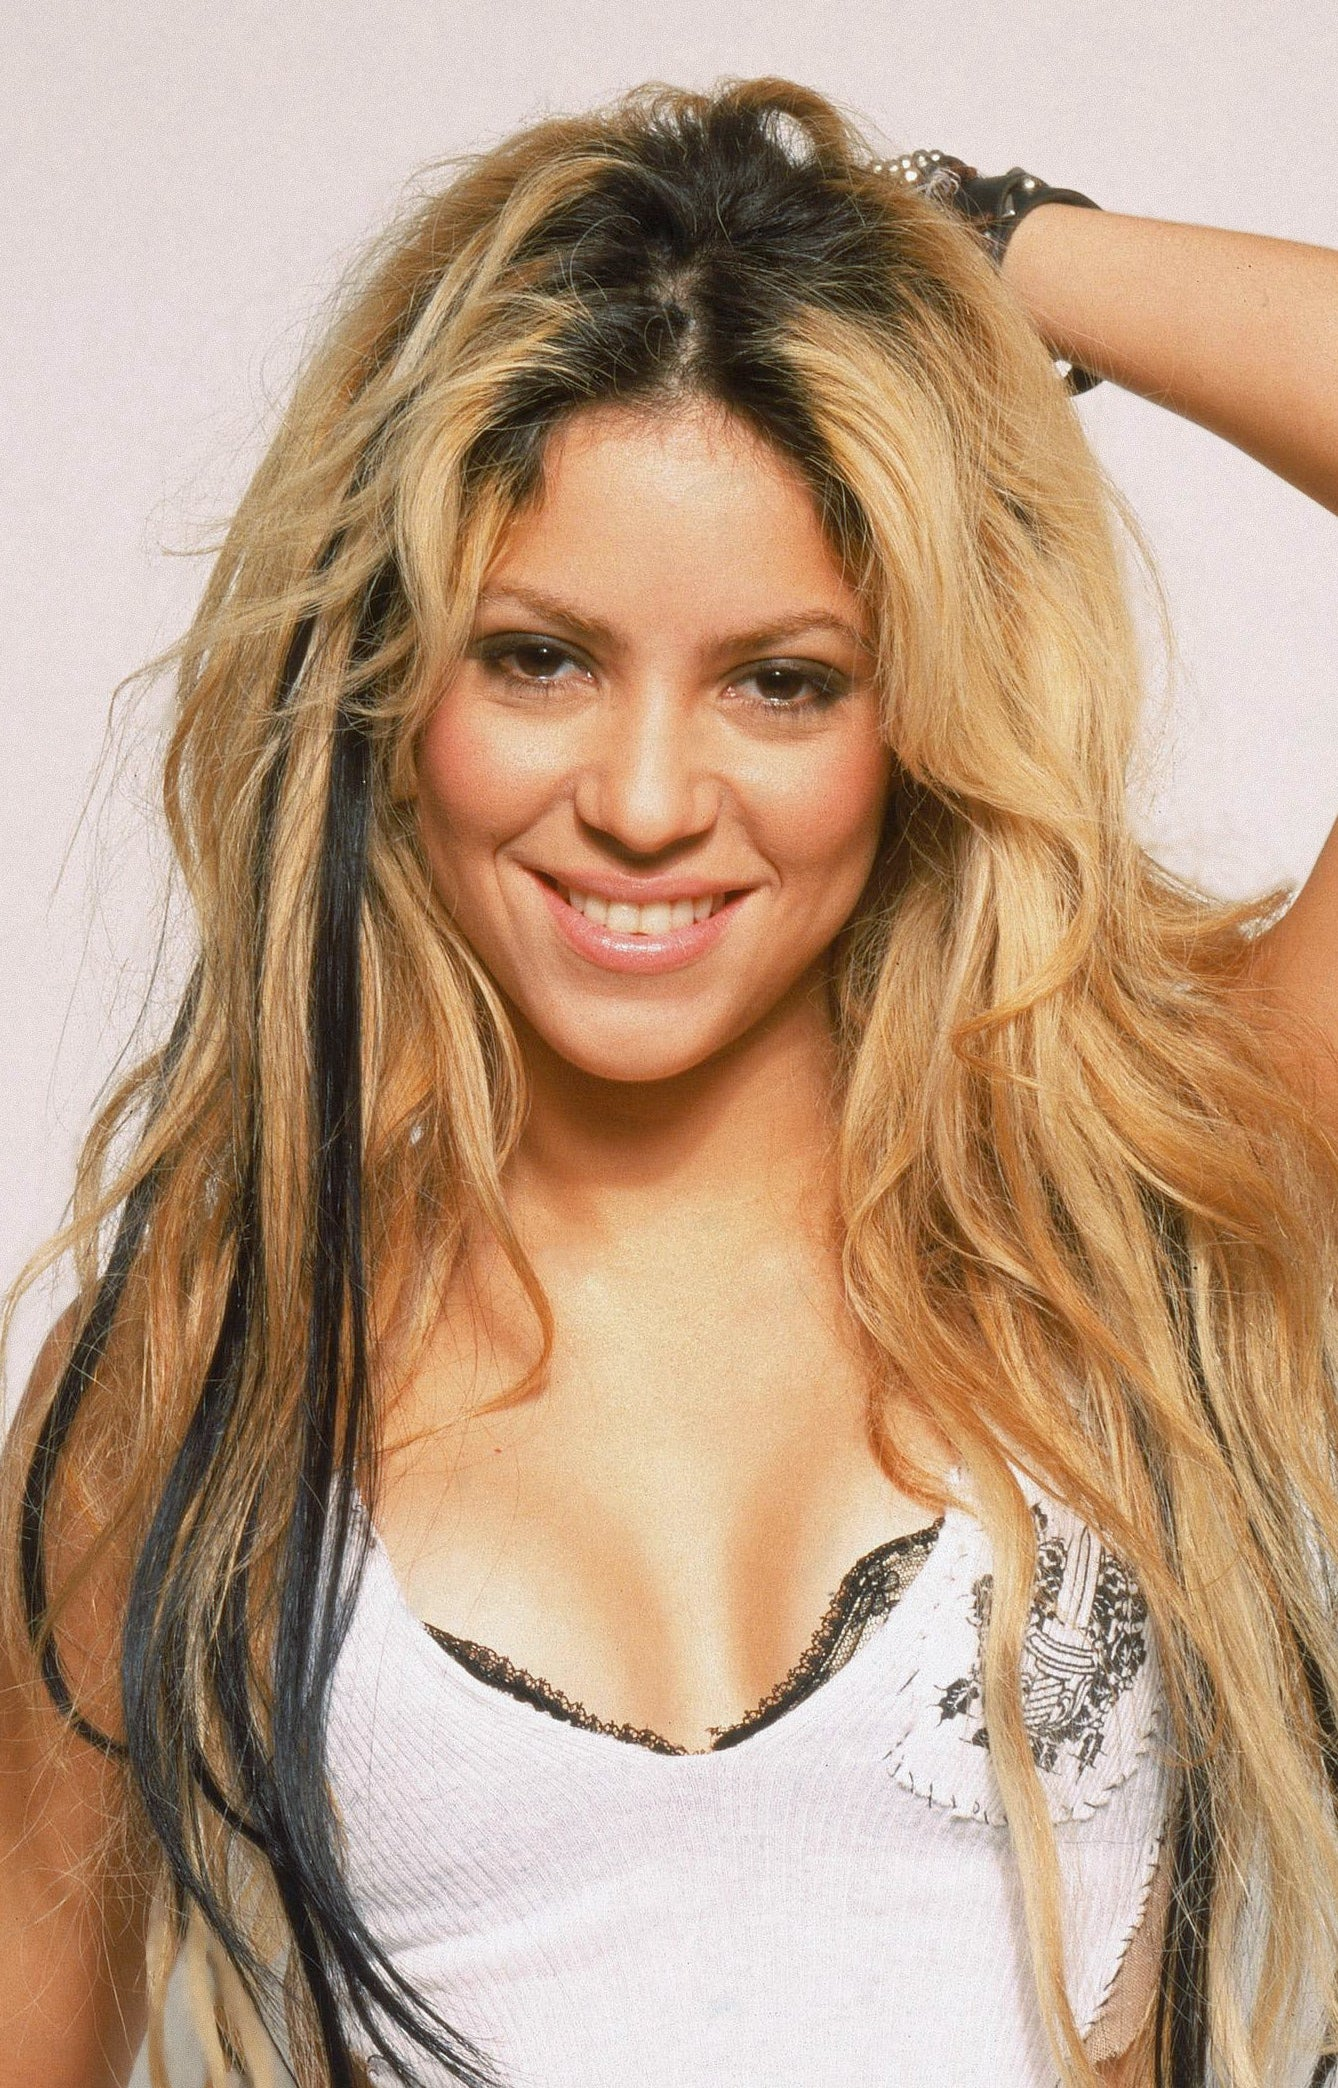 Shakira, with her black streaks in her blonde hair, smiling into the camera